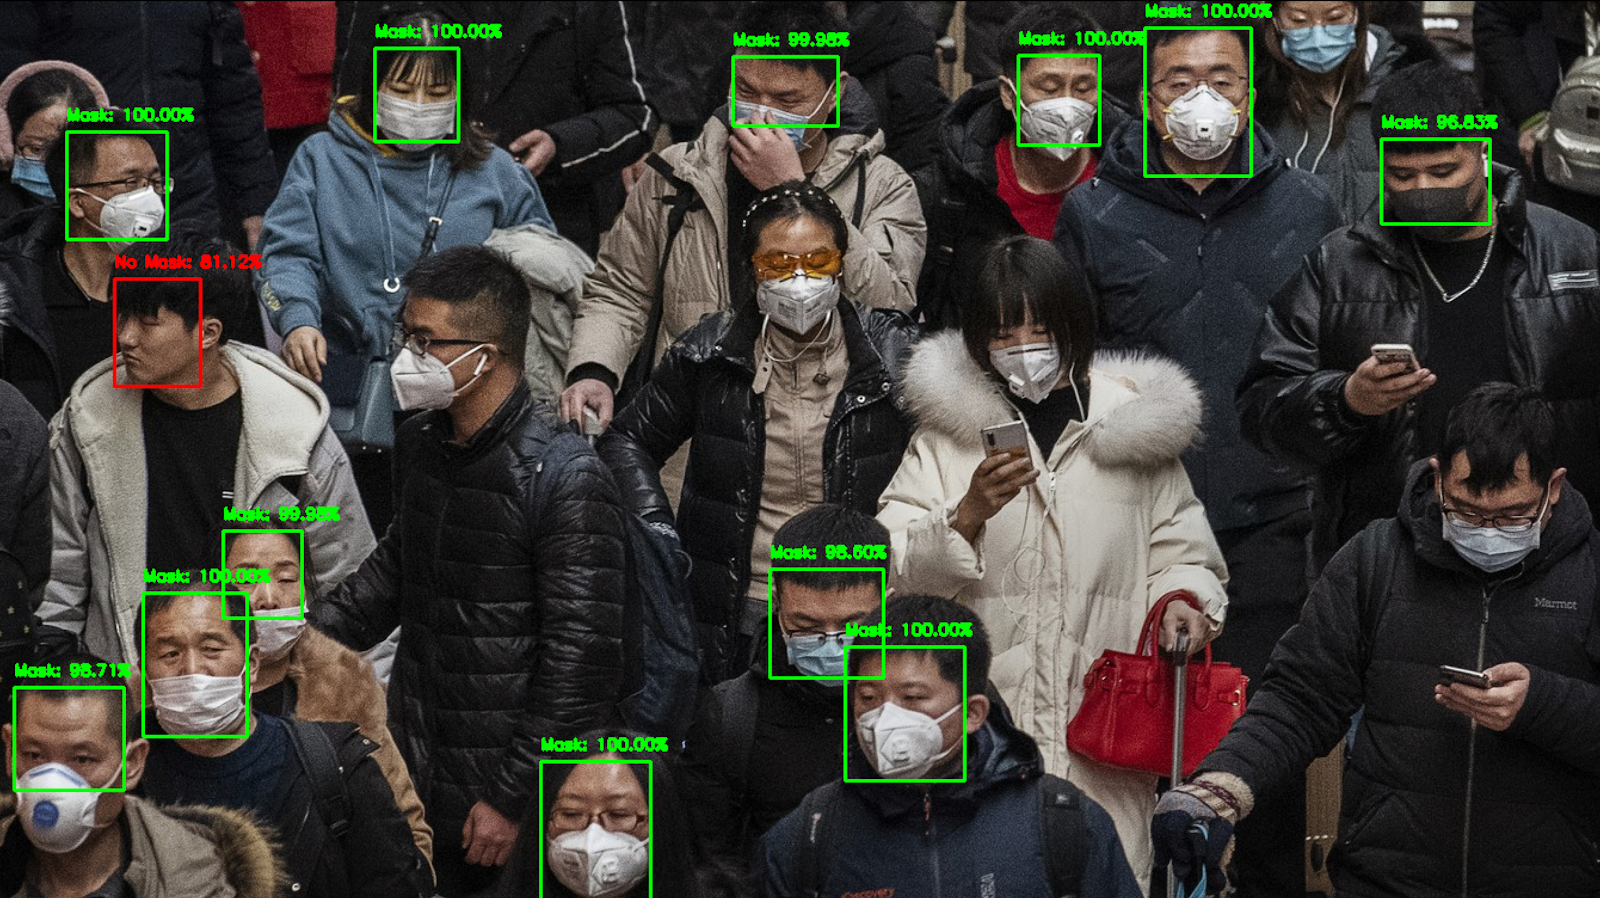 Face mask detection tool